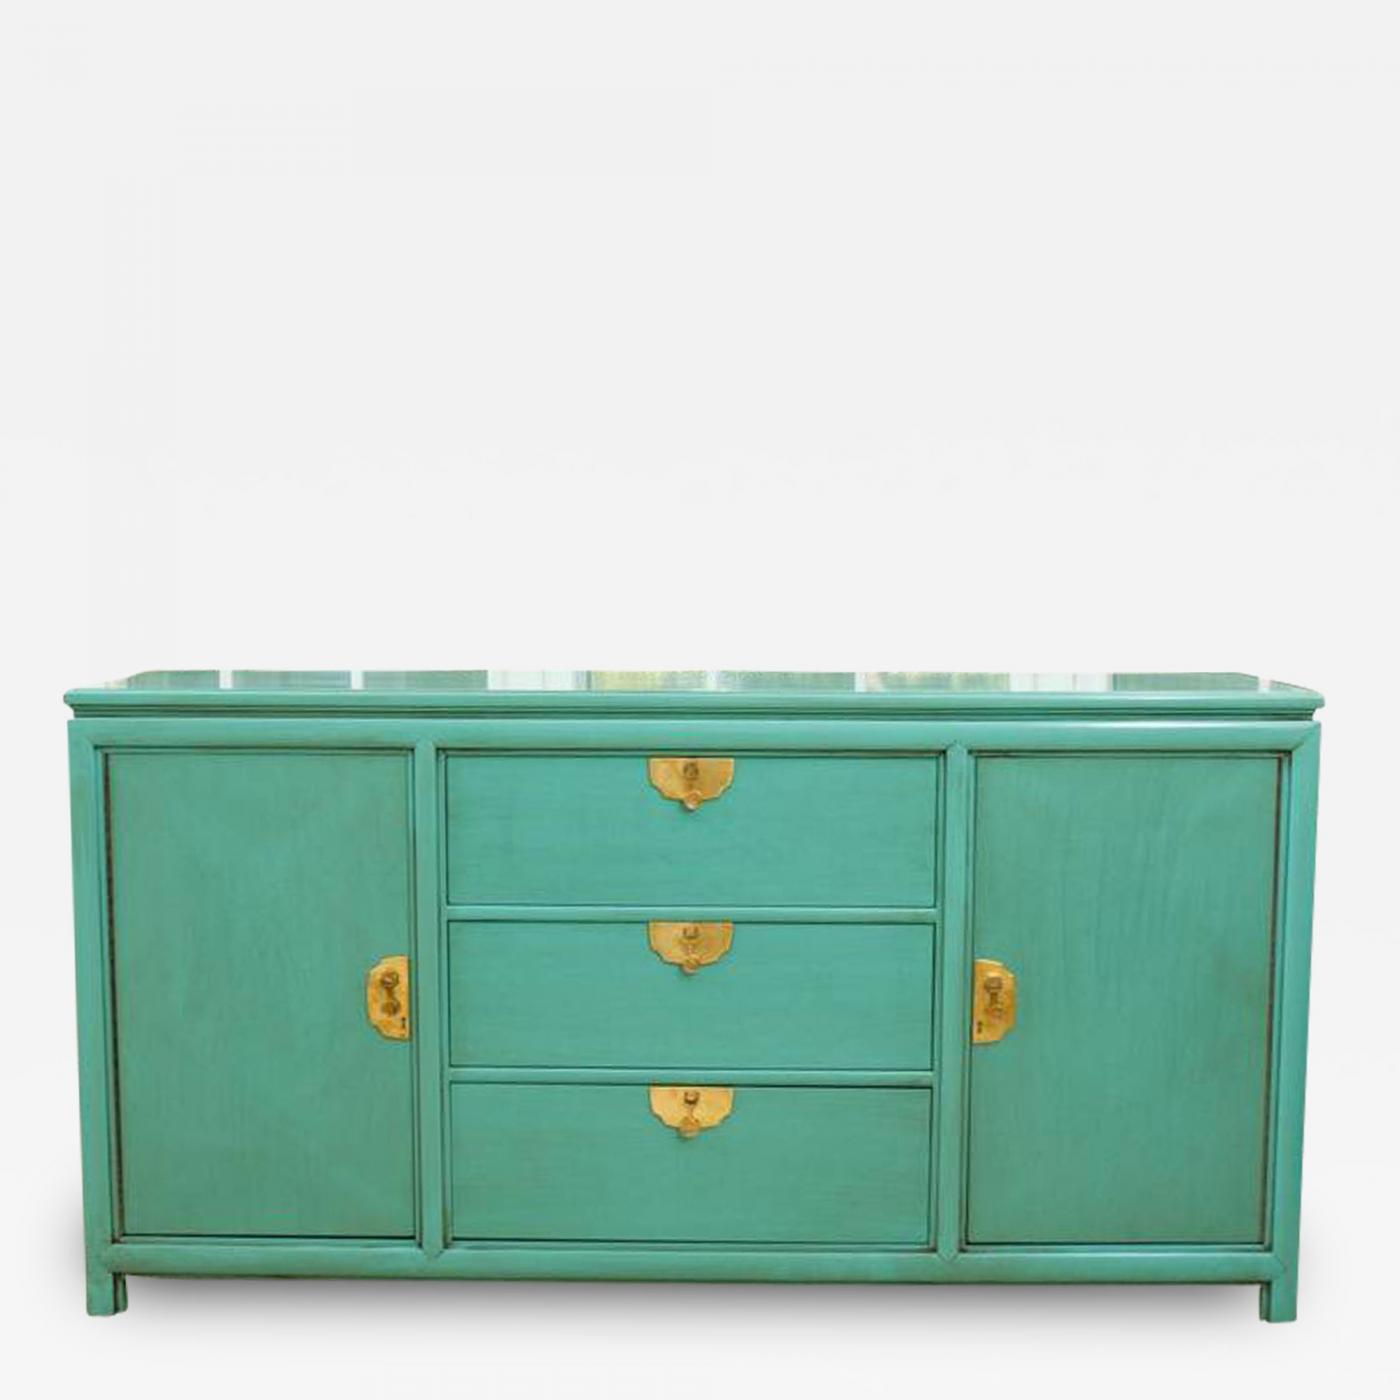 Listings / Furniture / Case Pieces / Cabinets